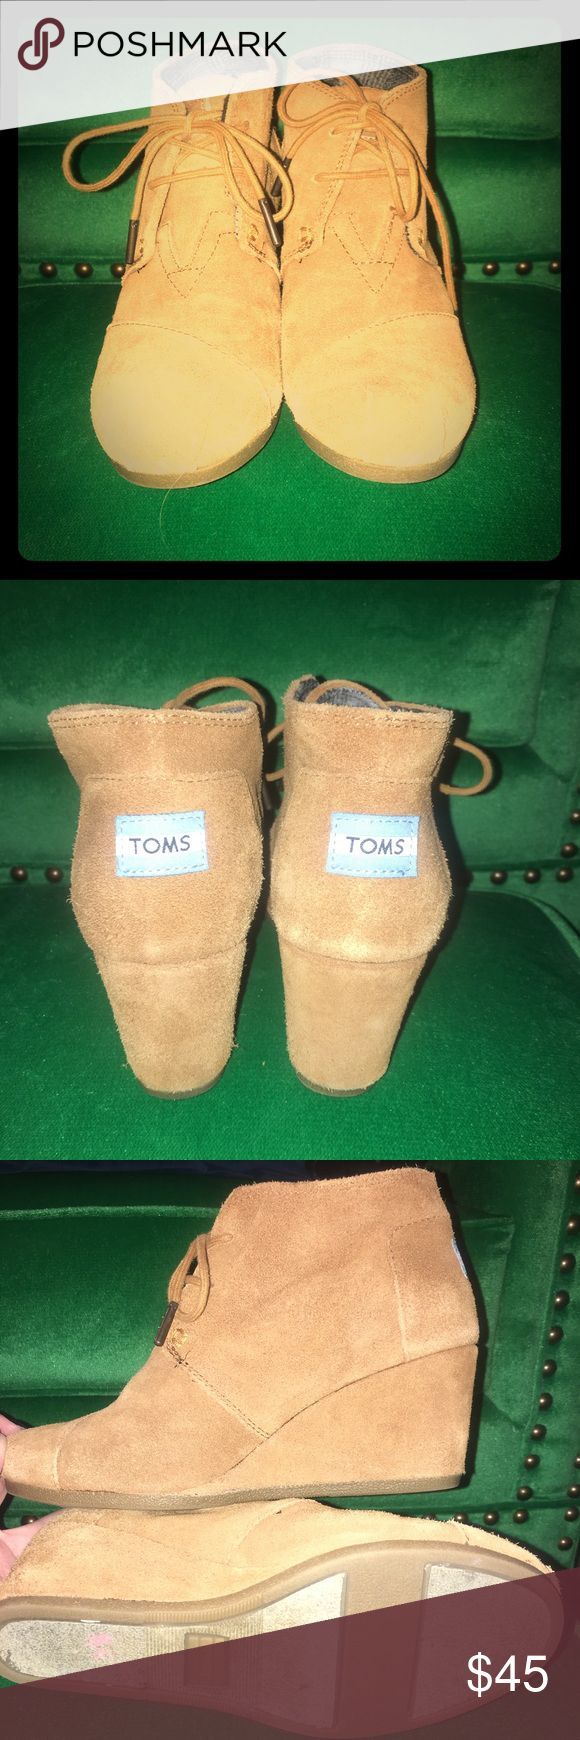 Tom's Desert Wedge Booties in Cognac 7.5 Tom's brand wedge booties in cognac/ tan color.  Excellent condition, only worn twice. TOMS Shoes Ankle Boots & Booties